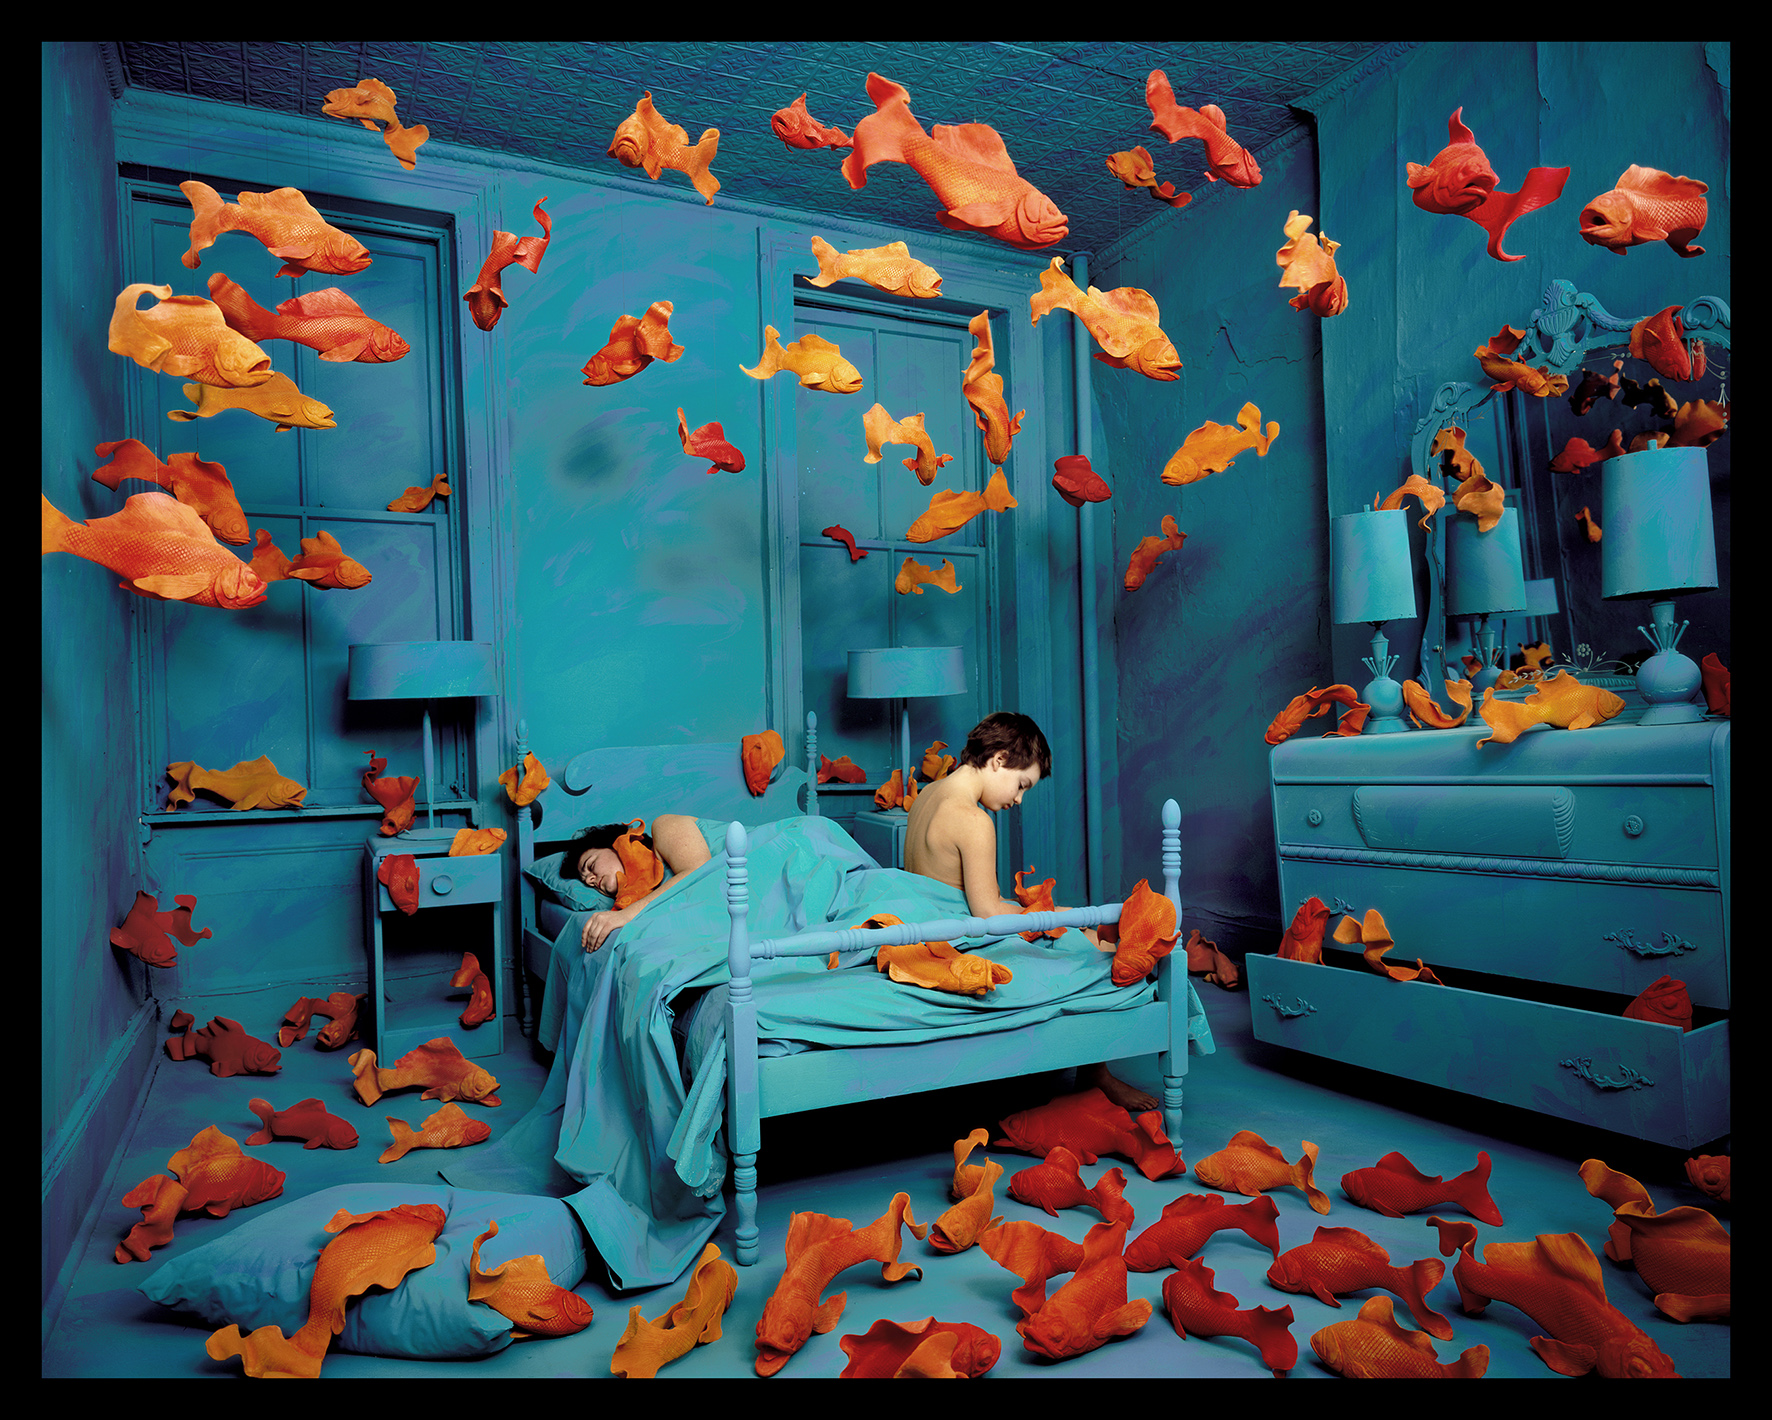 Revenge of the goldfish, 1981 color photograph approx. image size cm 68.75 x 87.5 ca. Courtesy: Paci contemporary gallery (Brescia – Porto Cervo, IT)